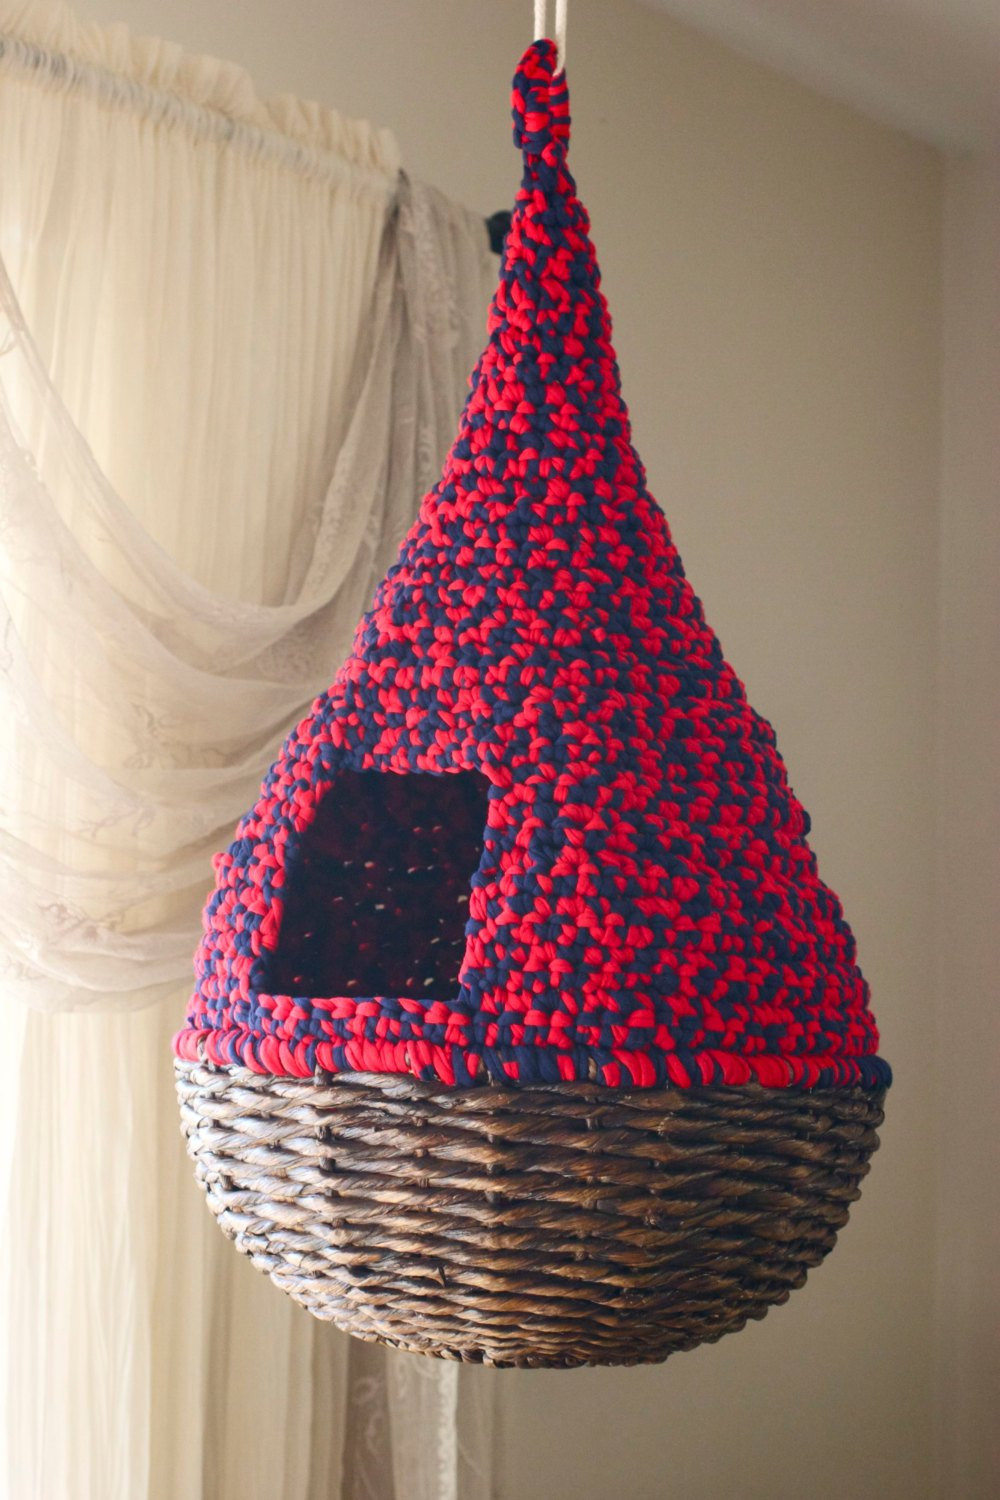 Crochet Cat House Inspirational Hanging Cat Nest Bright Red and Navy Blue Round Teardrop Of Crochet Cat House